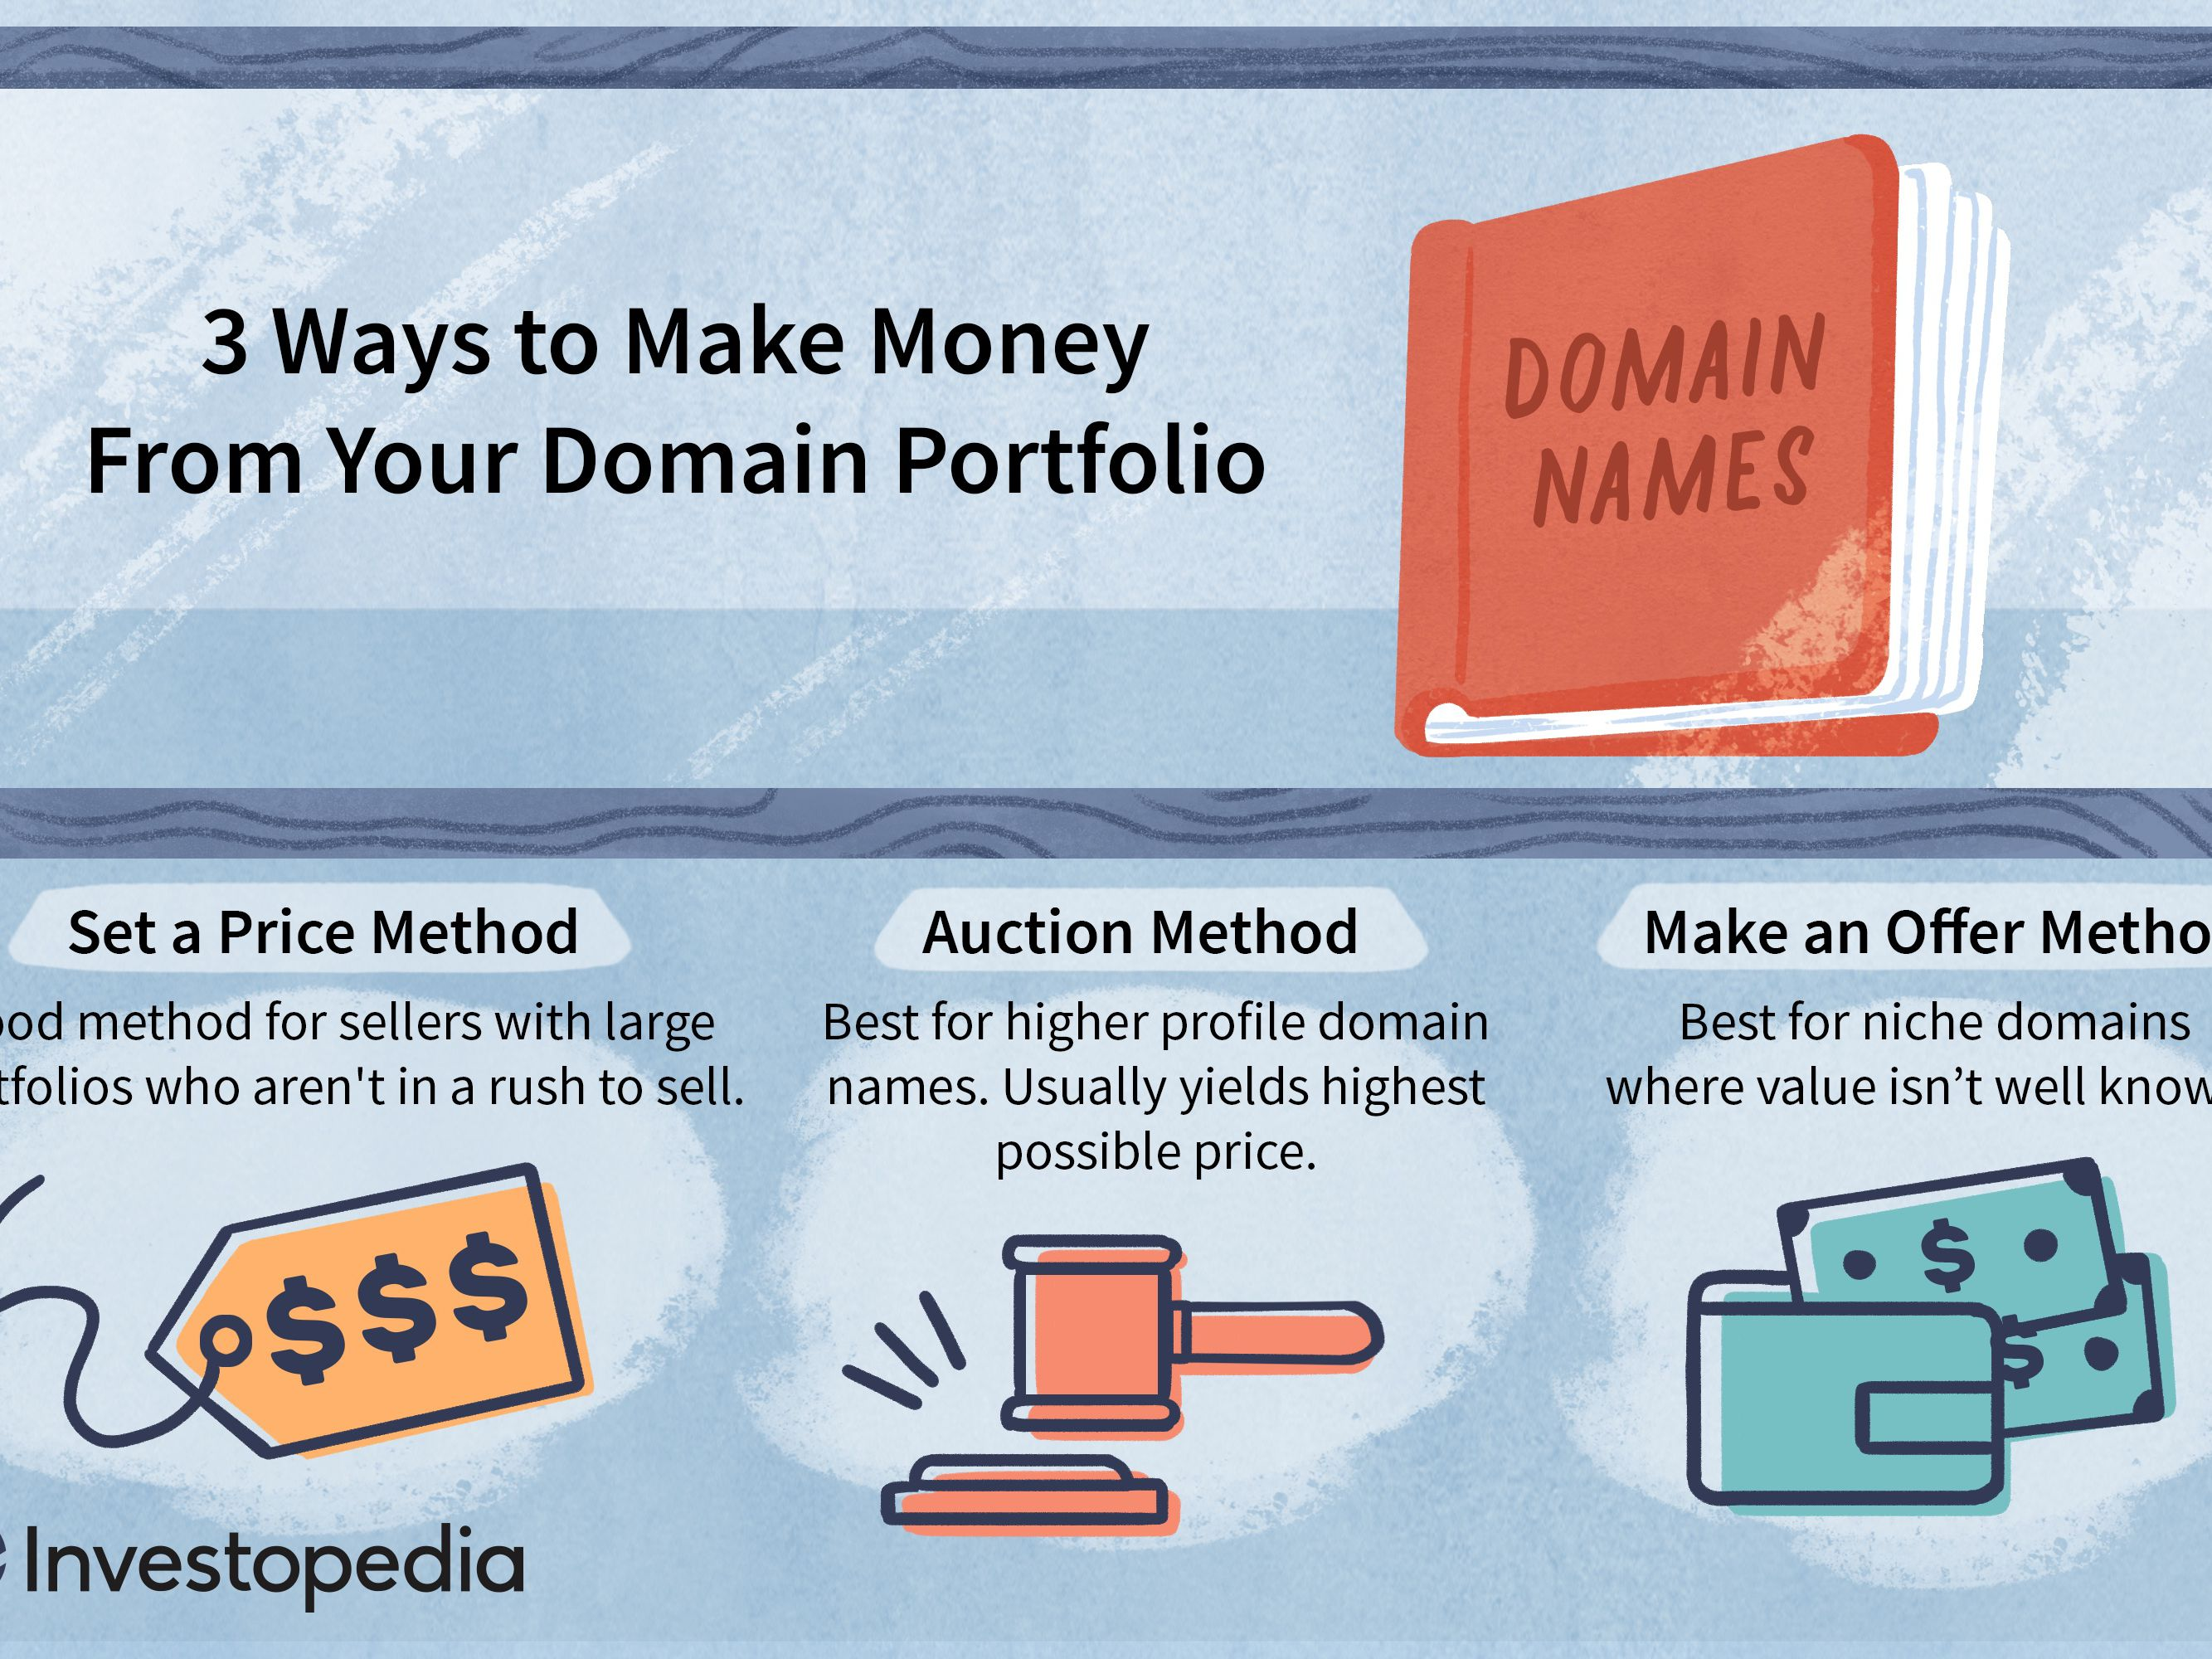 How To Make Money With Domain Names